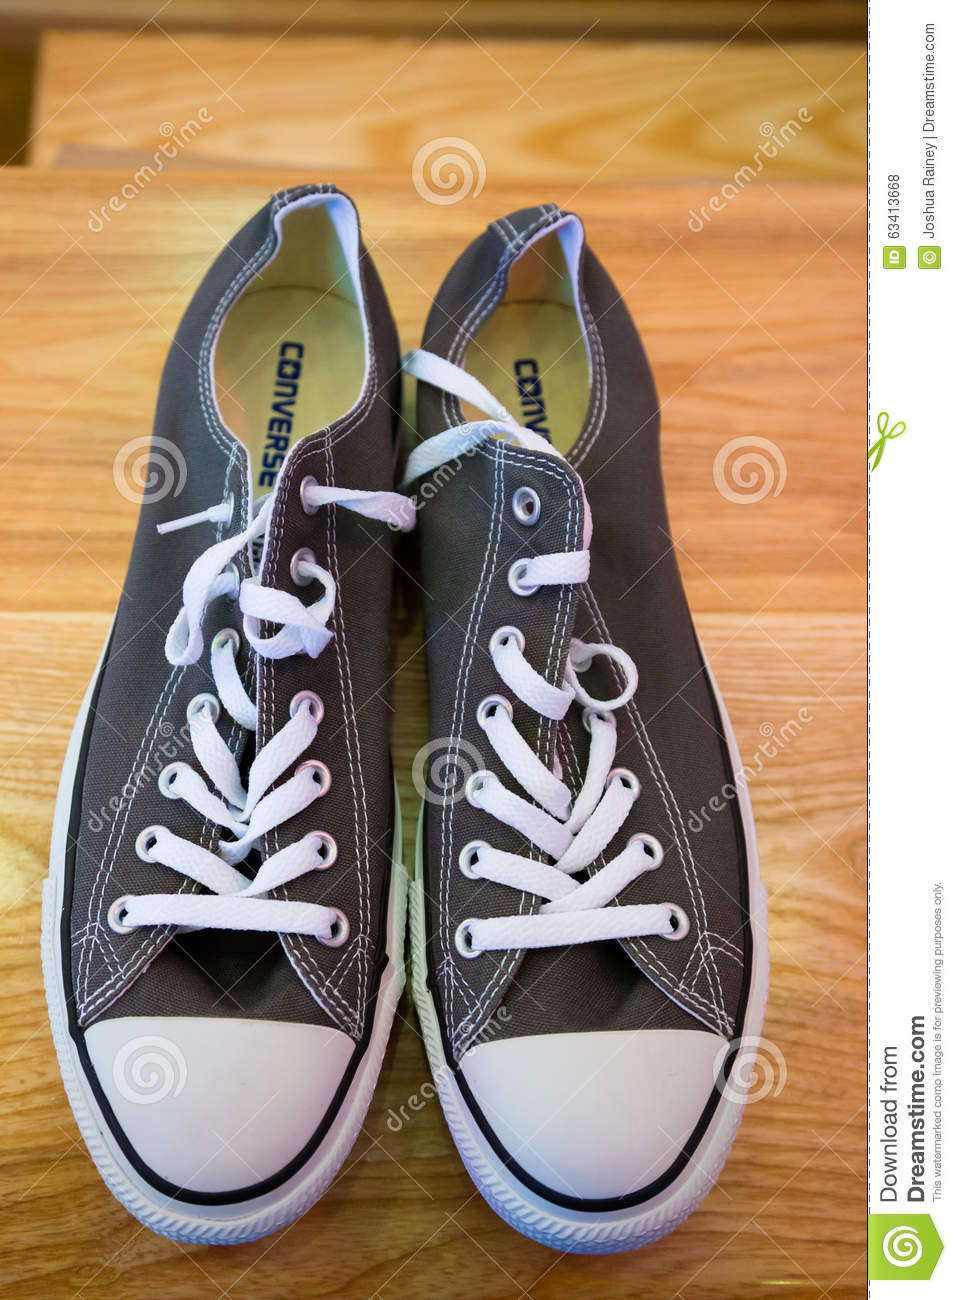 0b9abc857b11 Converse All Star Mens Shoes Editorial Stock Photo - Image of ...